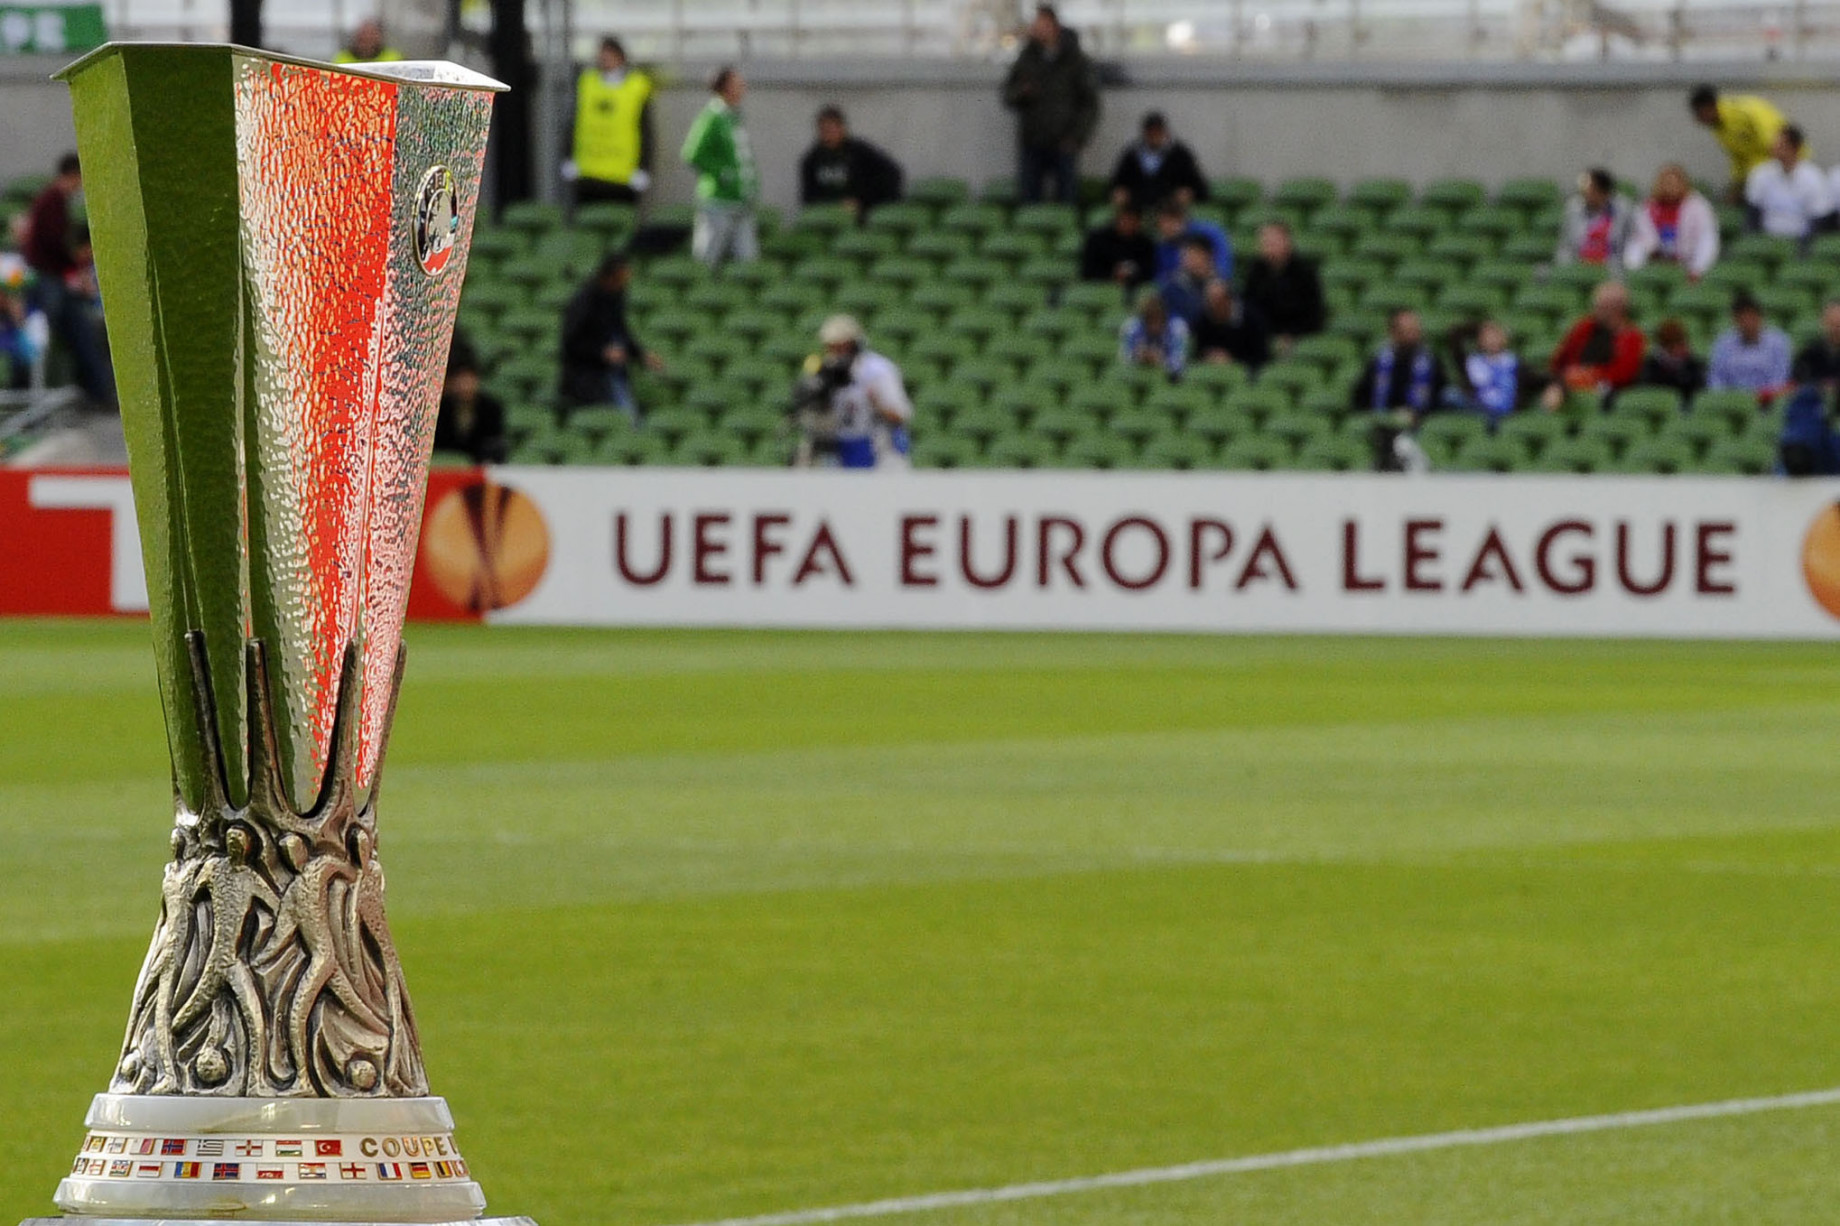 Europa_League_coppa_generica_IMAGE.jpg